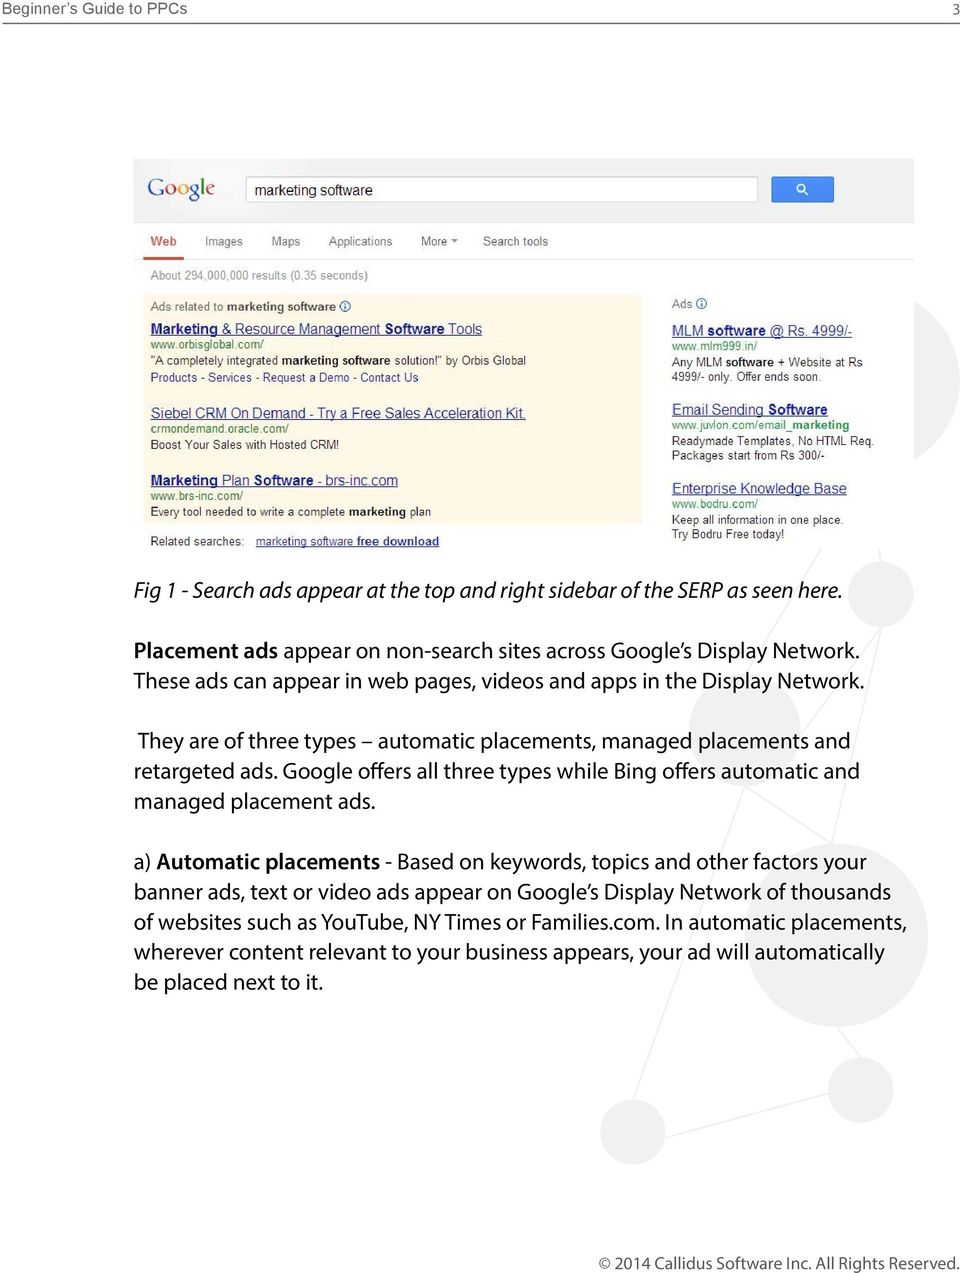 Google offers all three types while Bing offers automatic and managed placement ads.